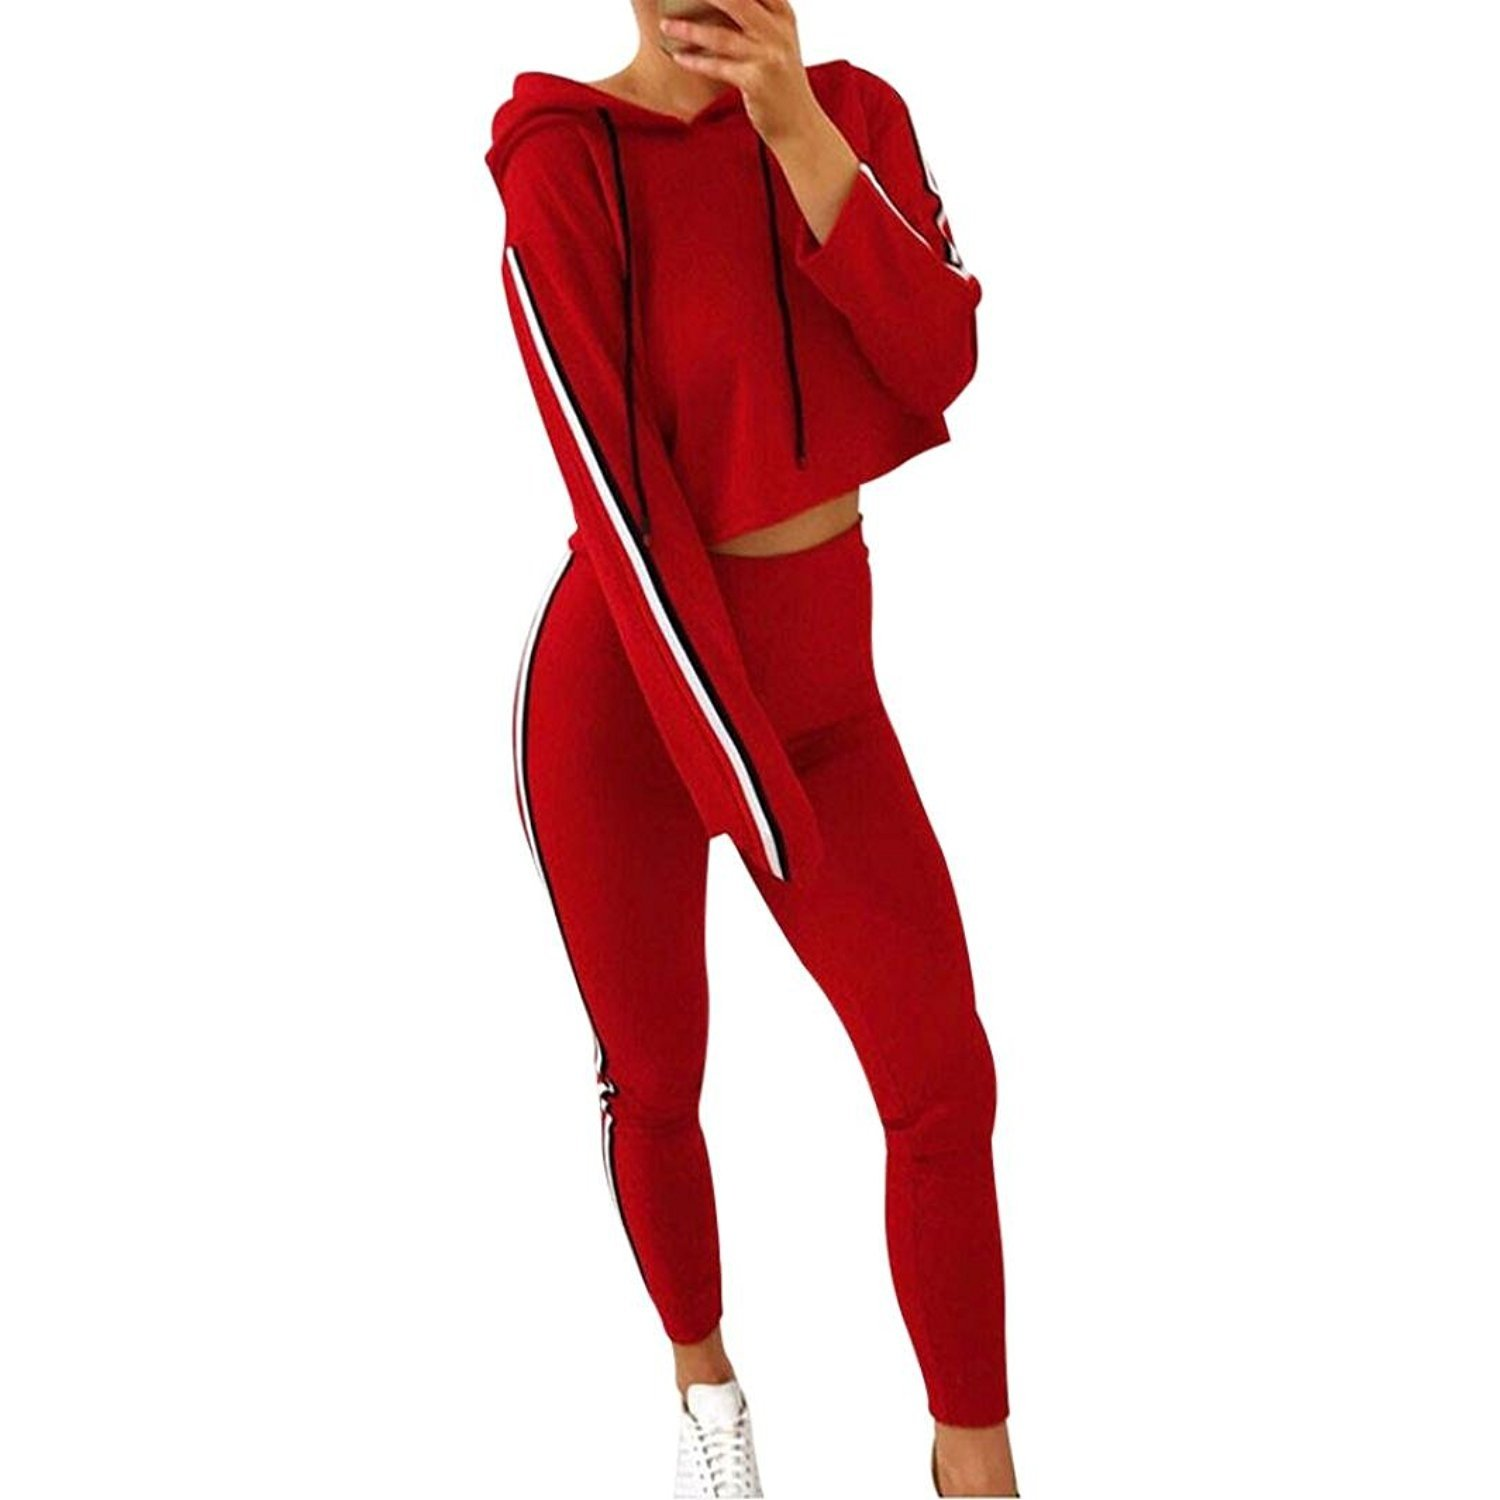 Challyhope Hot Sales, Women Tracksuit Sports Casual Pullover Sweatshirt Cropped Tops+Pants Sets